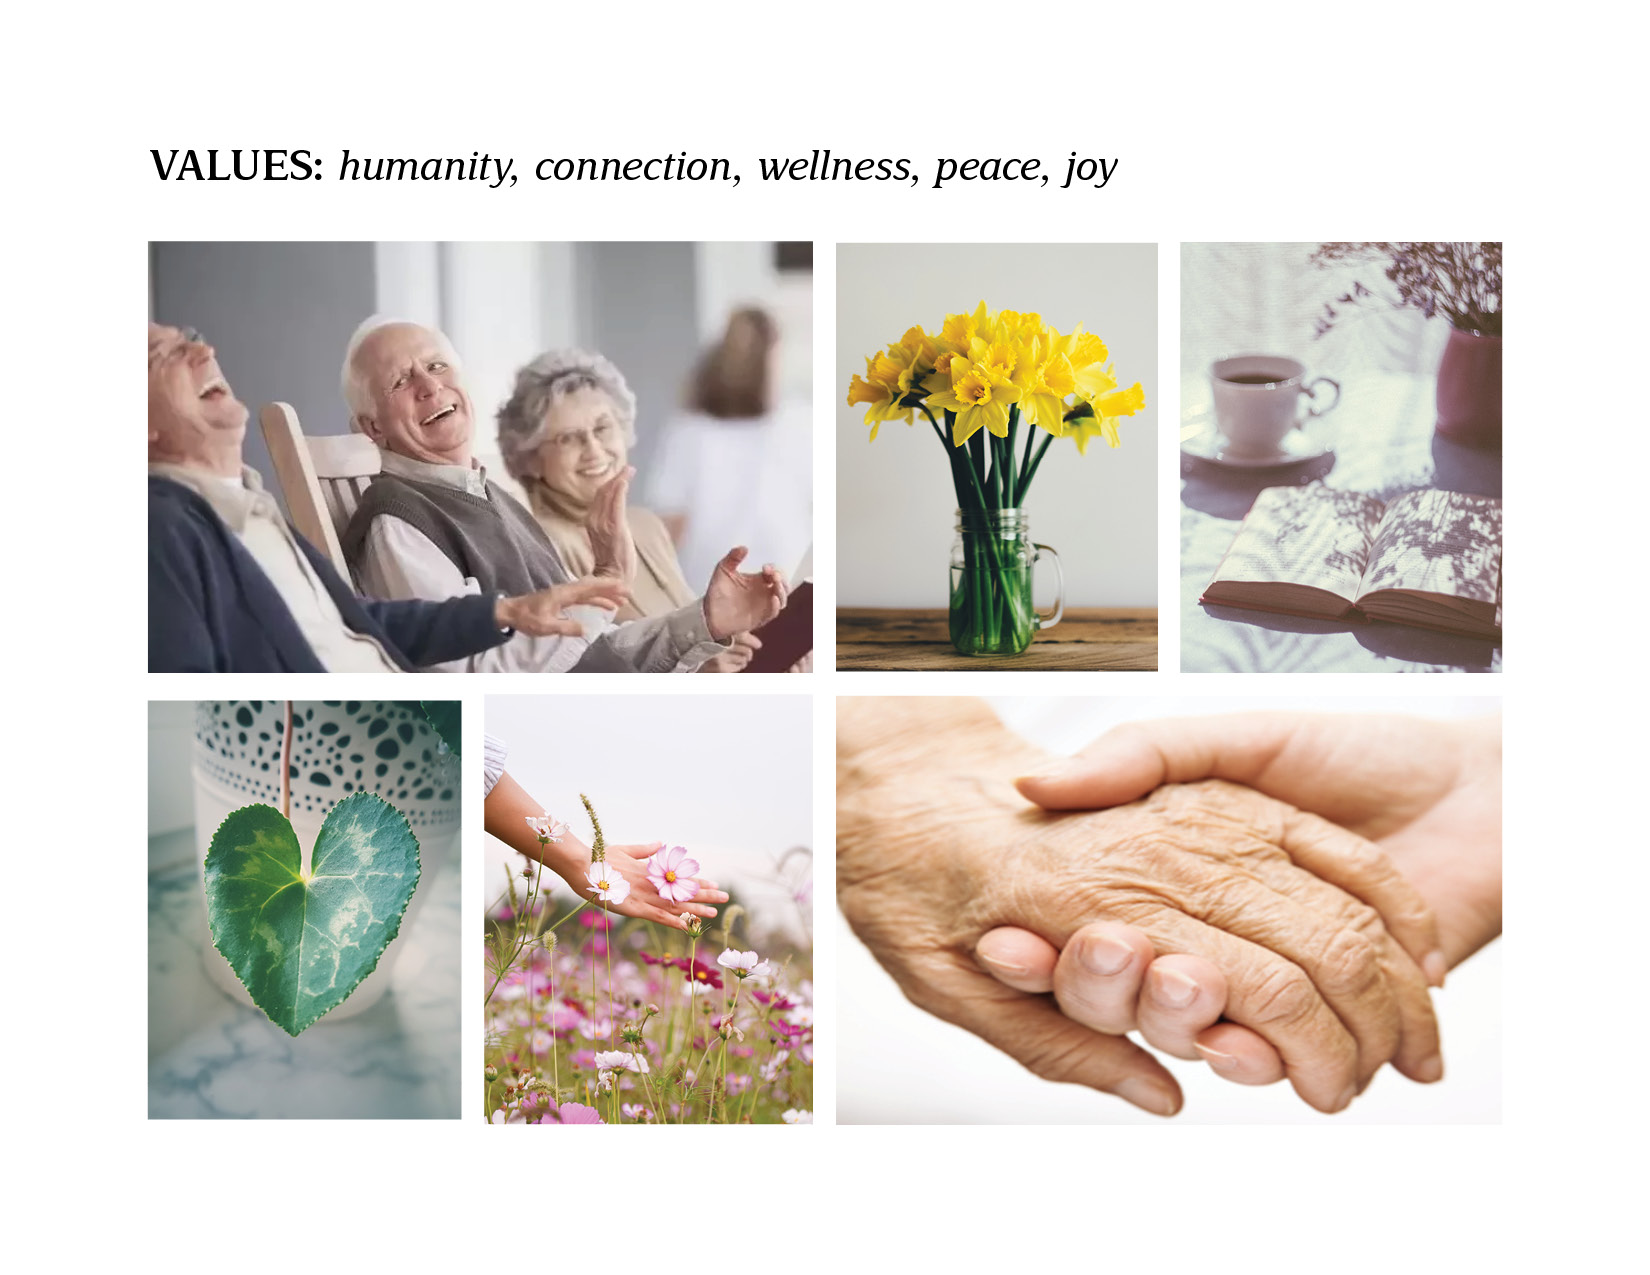 massage therapy branding: Peaceful Connections Values Board